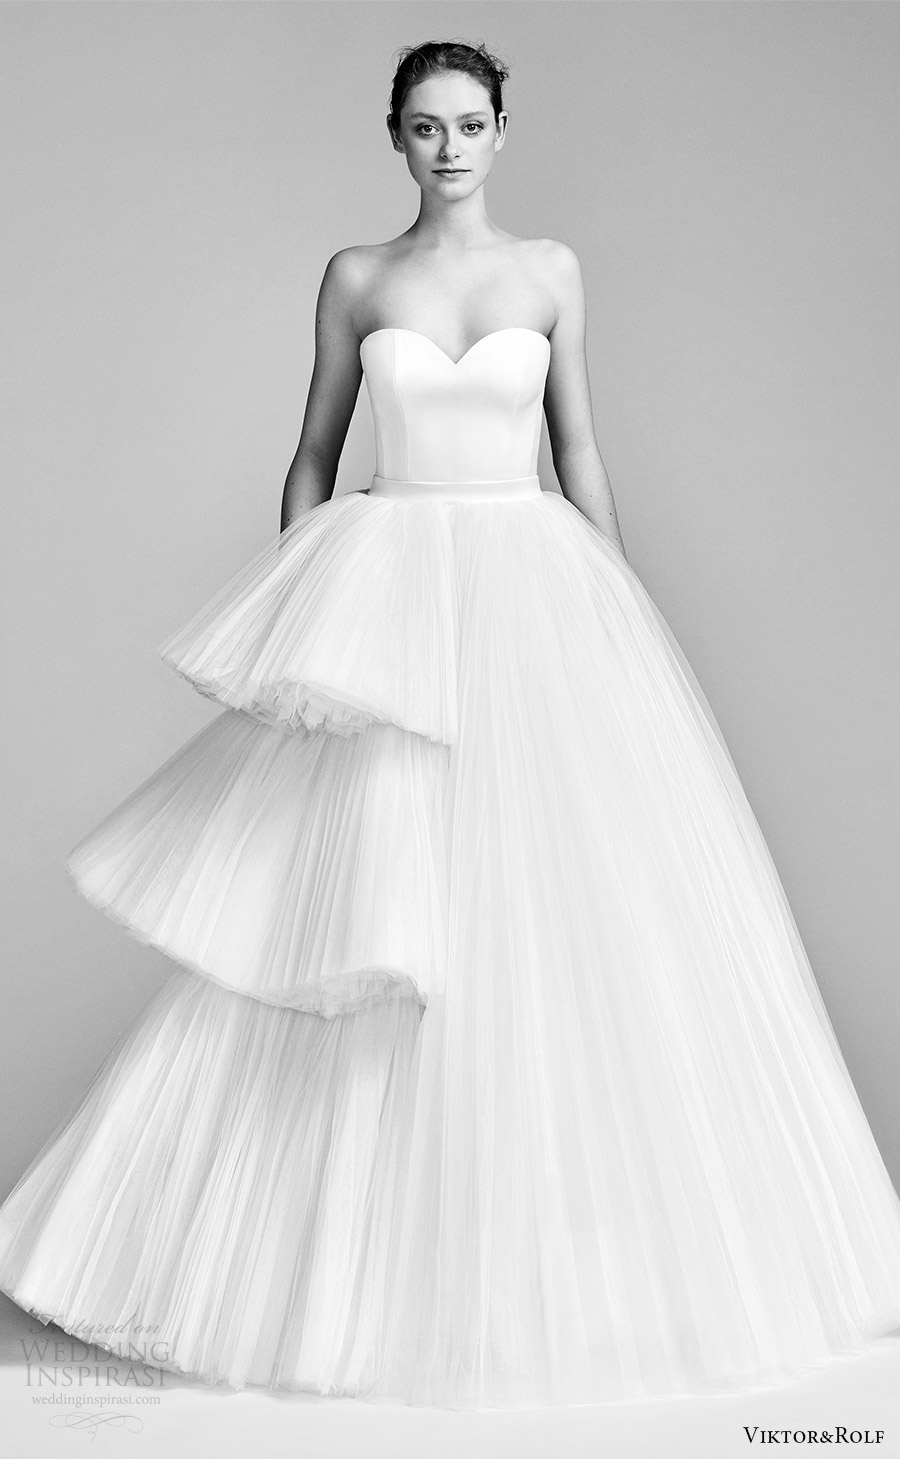 viktor and rolf spring 2018 brida strapless sweetheart ball gown wedding dress (19) mv tiered ruffle skirt romantic modern